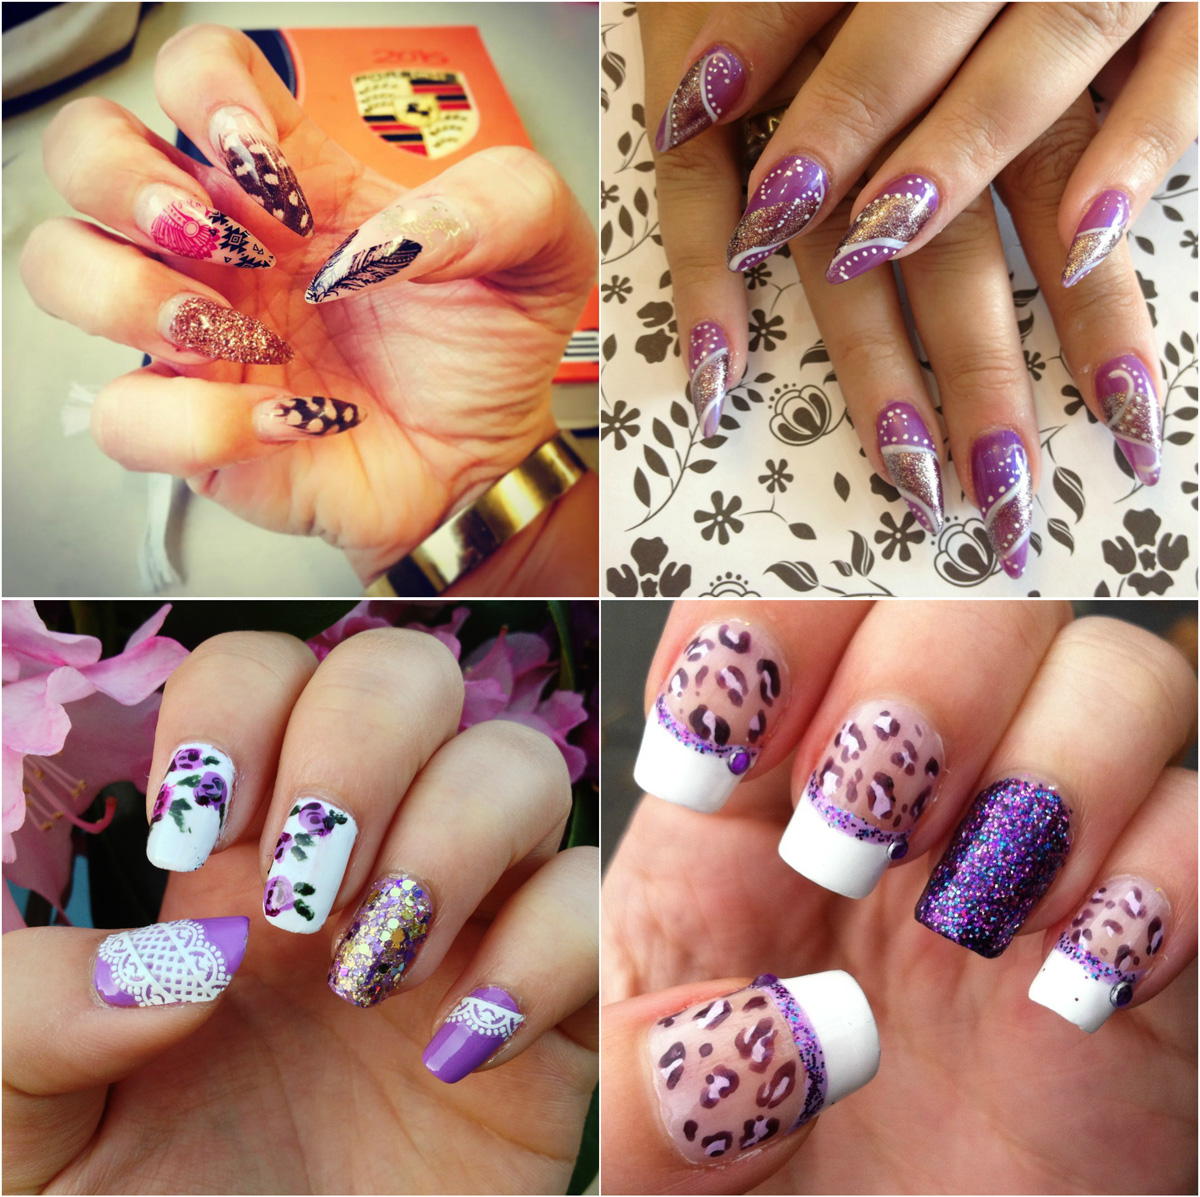 purple-with-white-lace-stiletto-nail-art